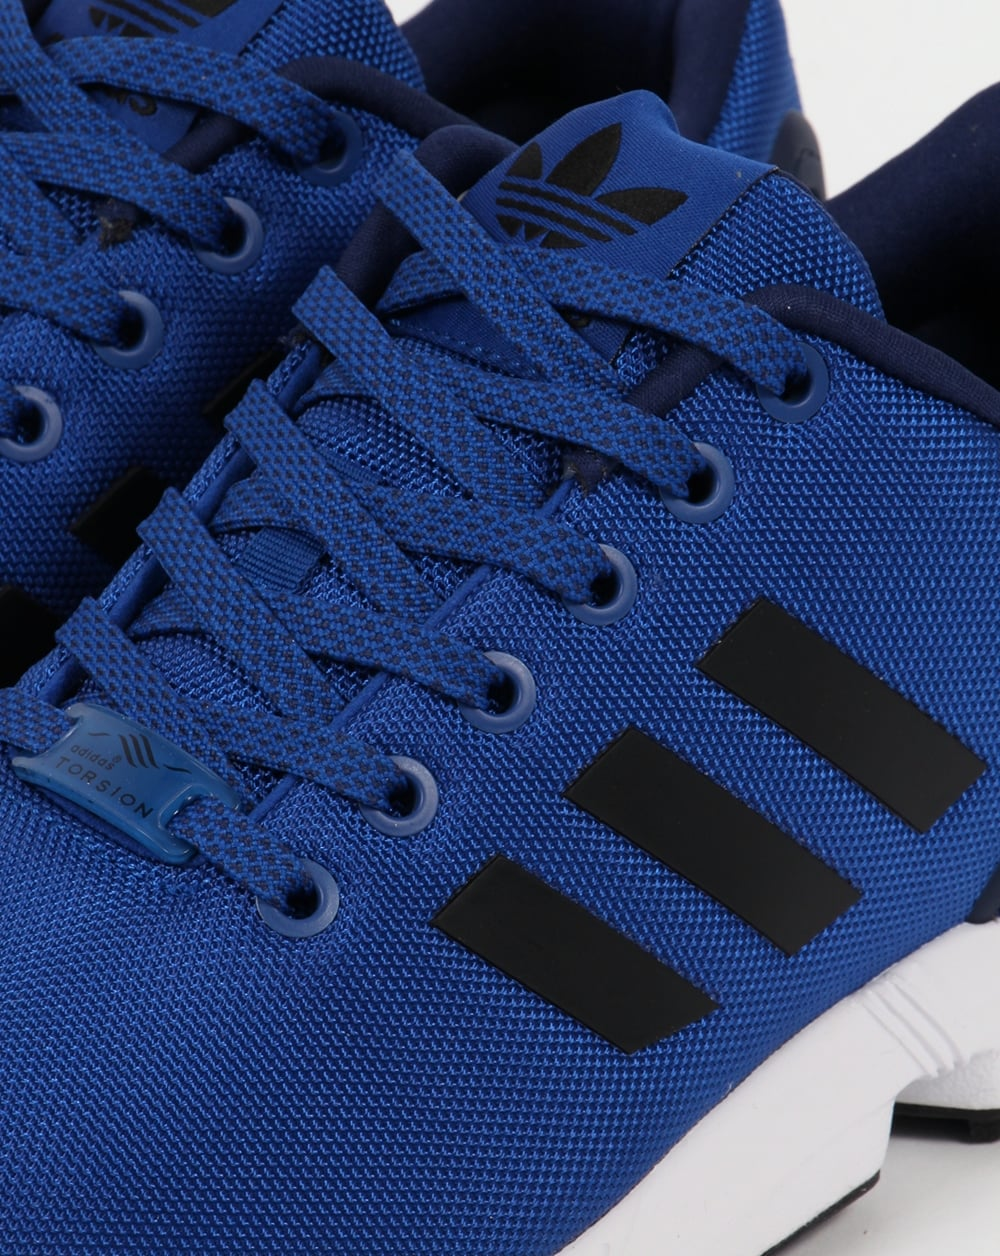 watch e5a9a 3b2e5 promo code for adidas zx flux blue trainers 882e6 b3bcc